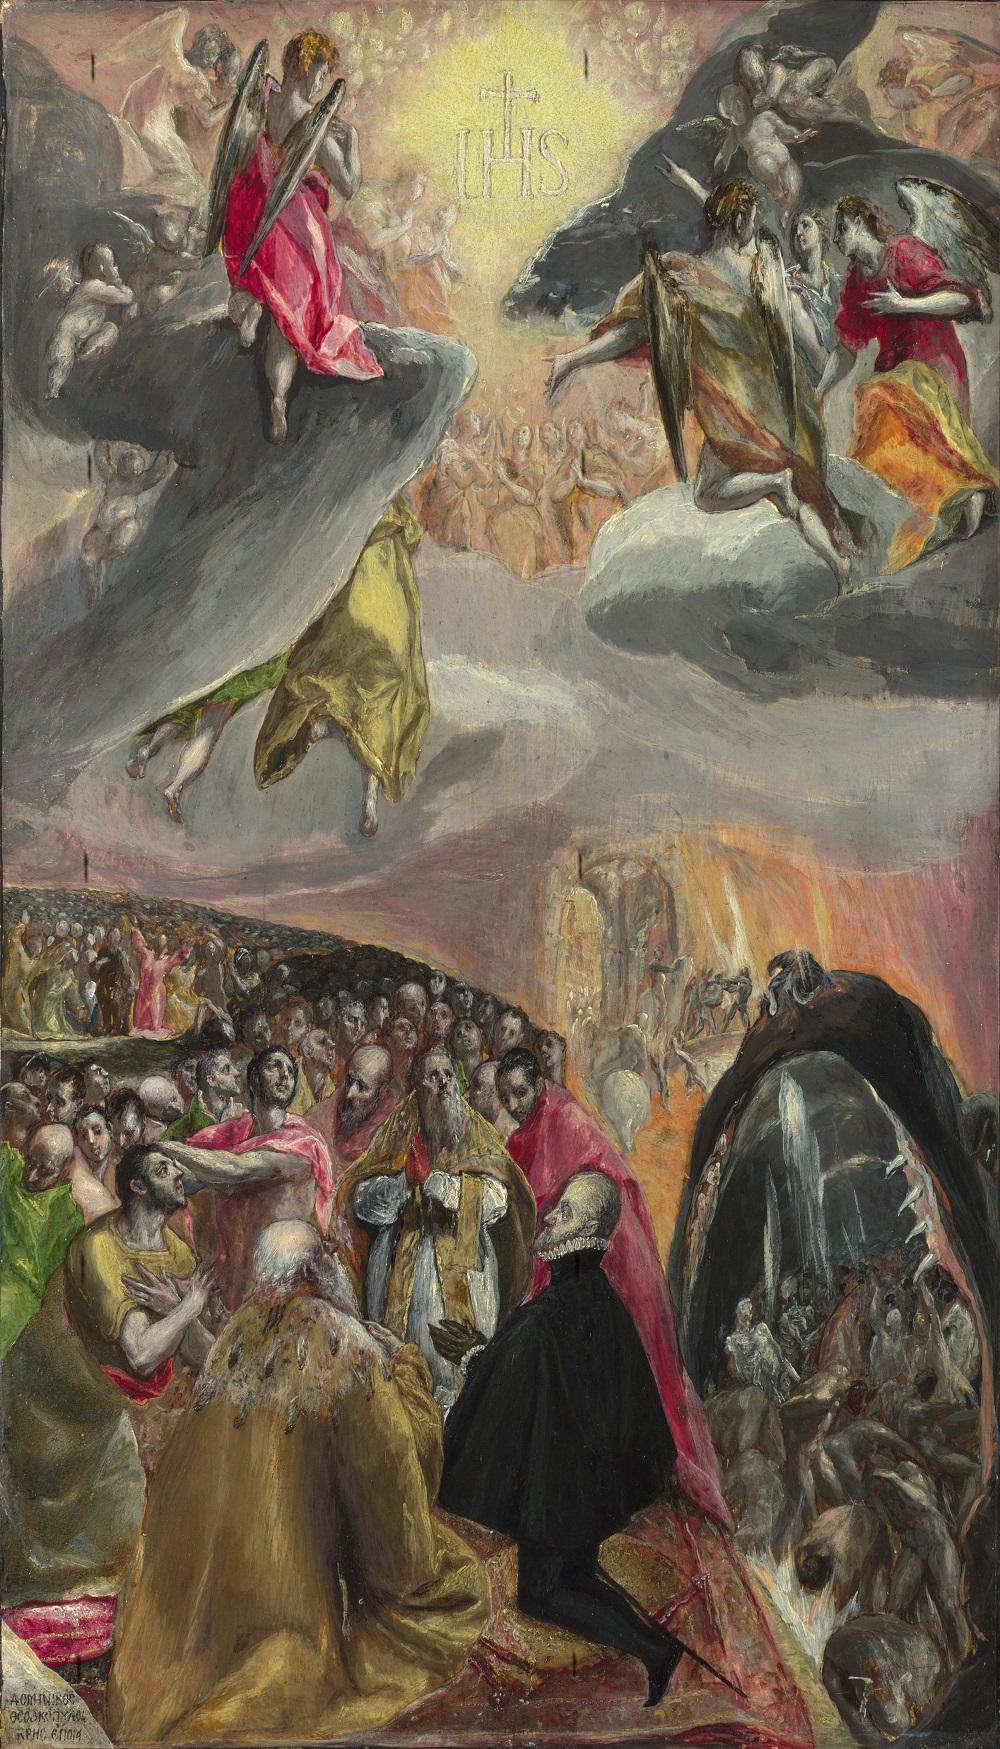 El_Greco_-_The_Adoration_of_the_Name_of_Jesus_-_WGA10433.jpg